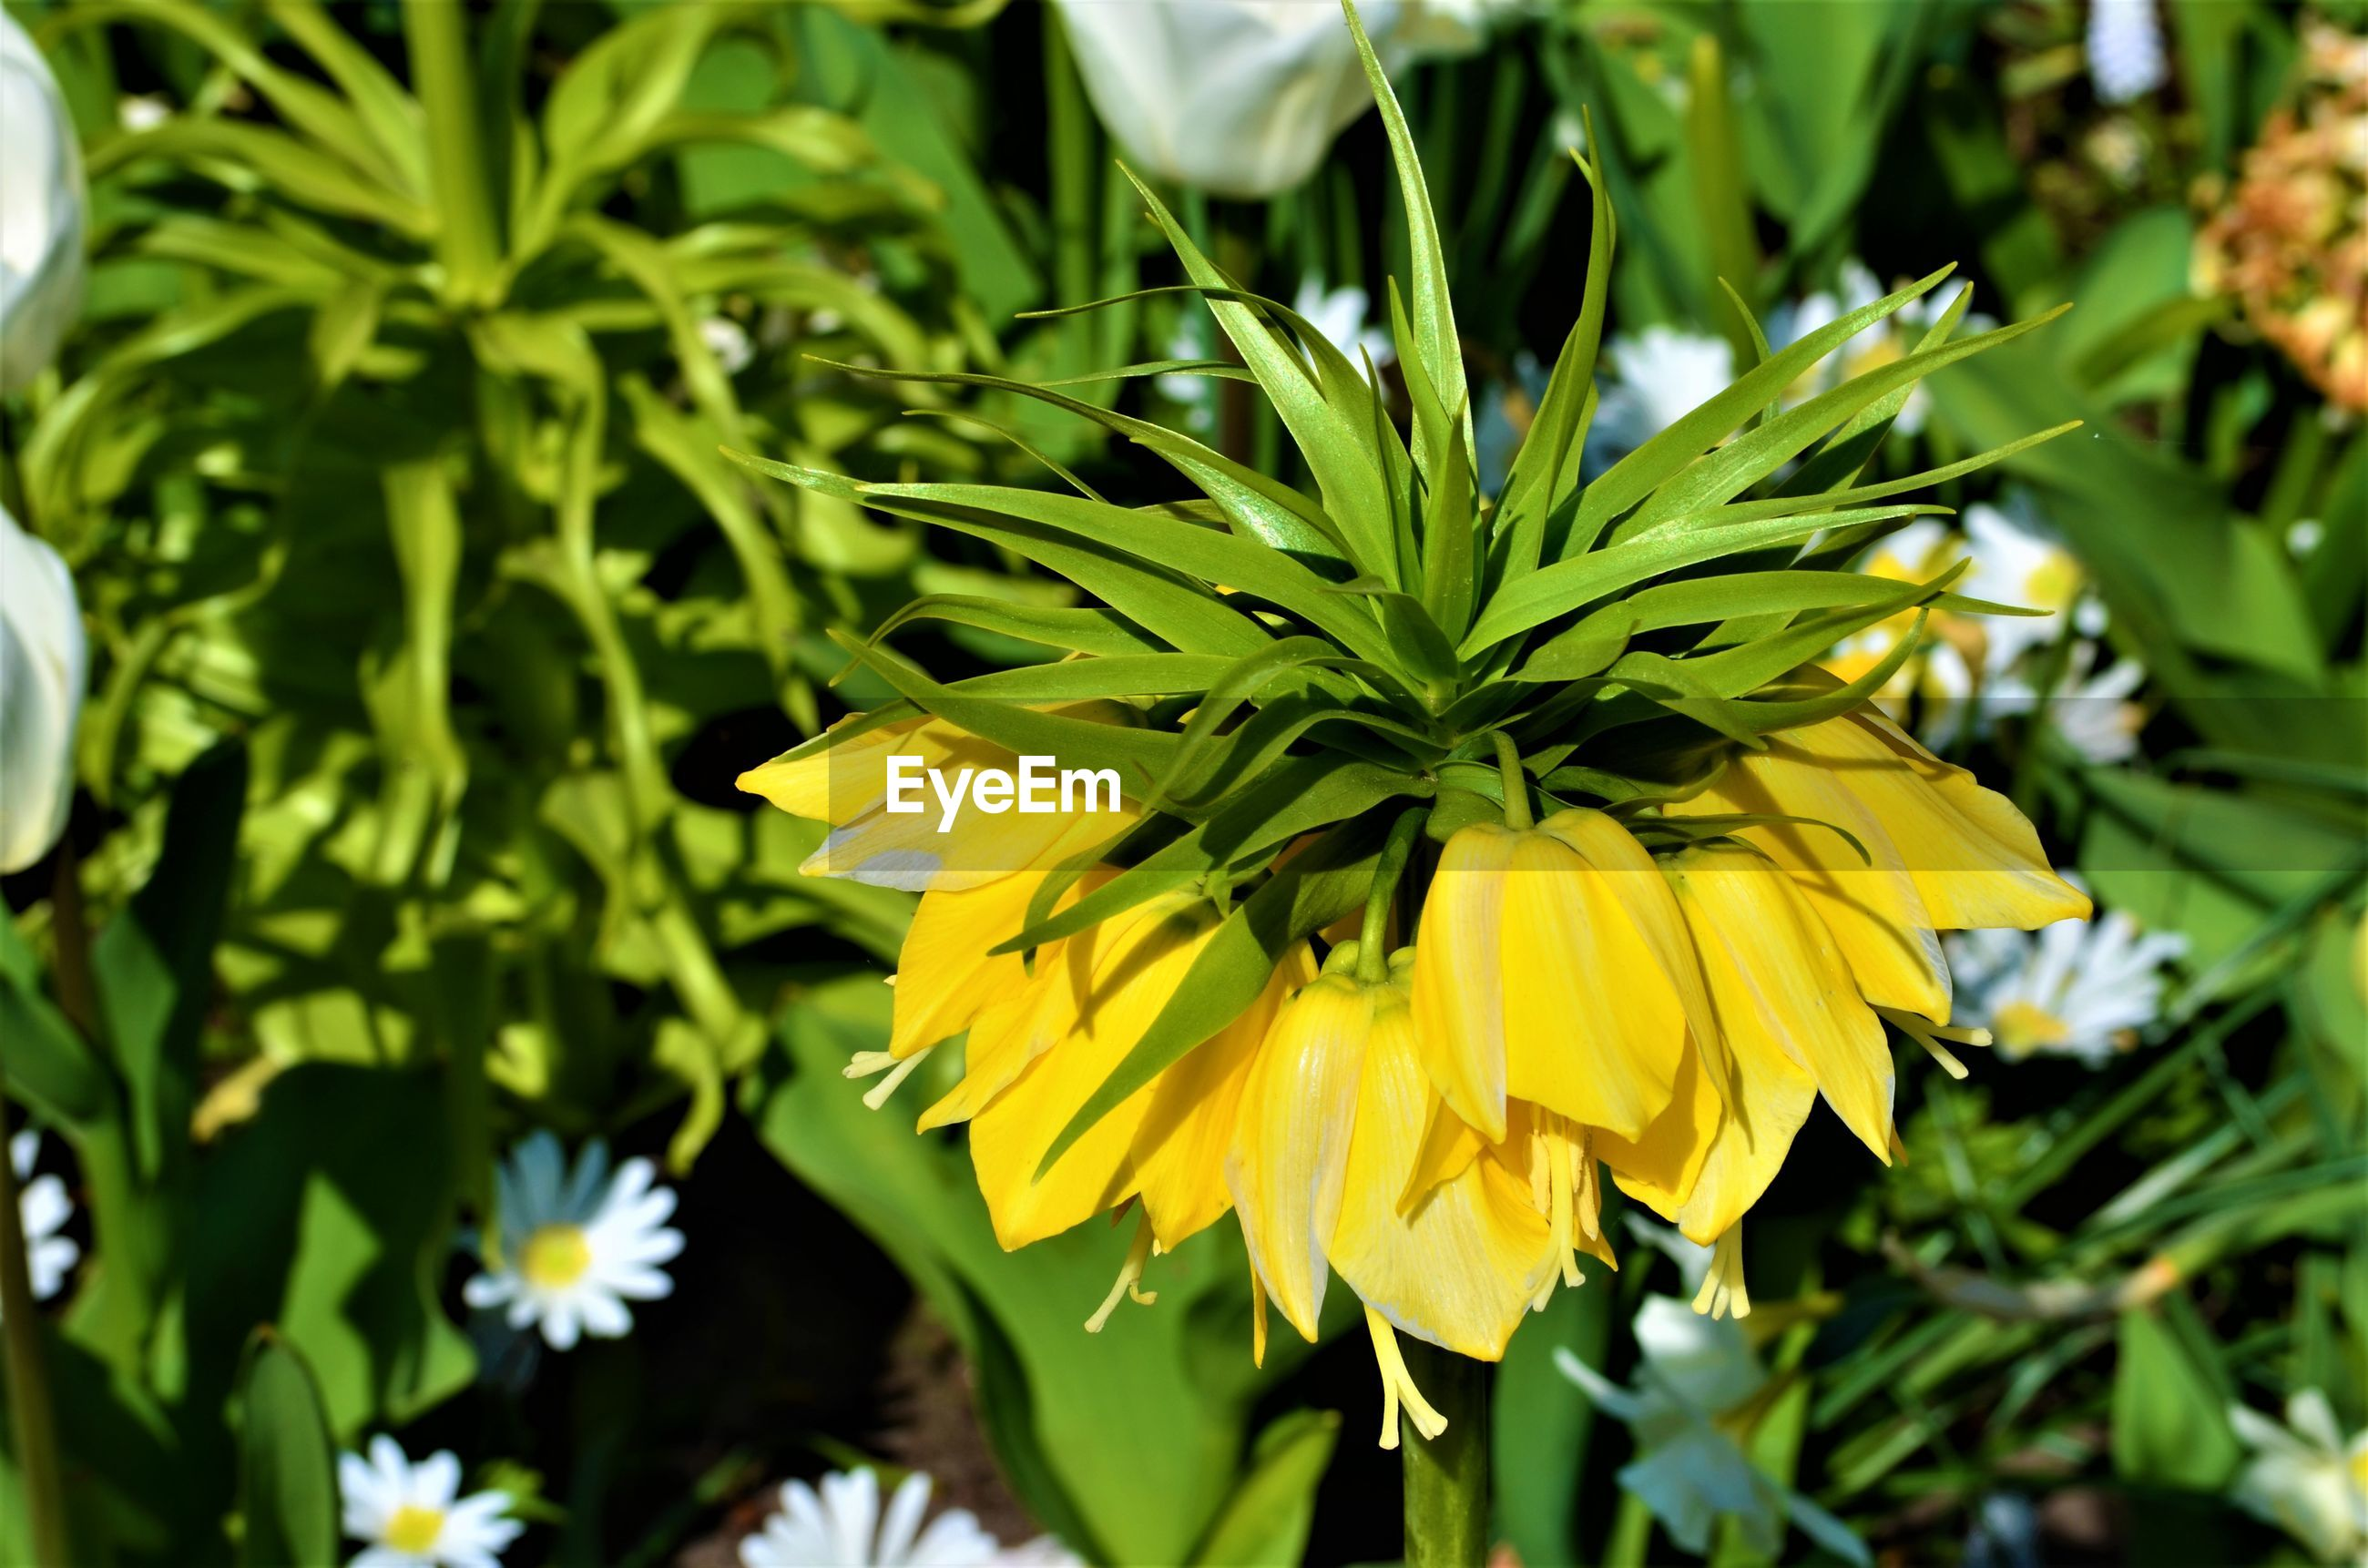 CLOSE UP OF YELLOW FLOWERING PLANT